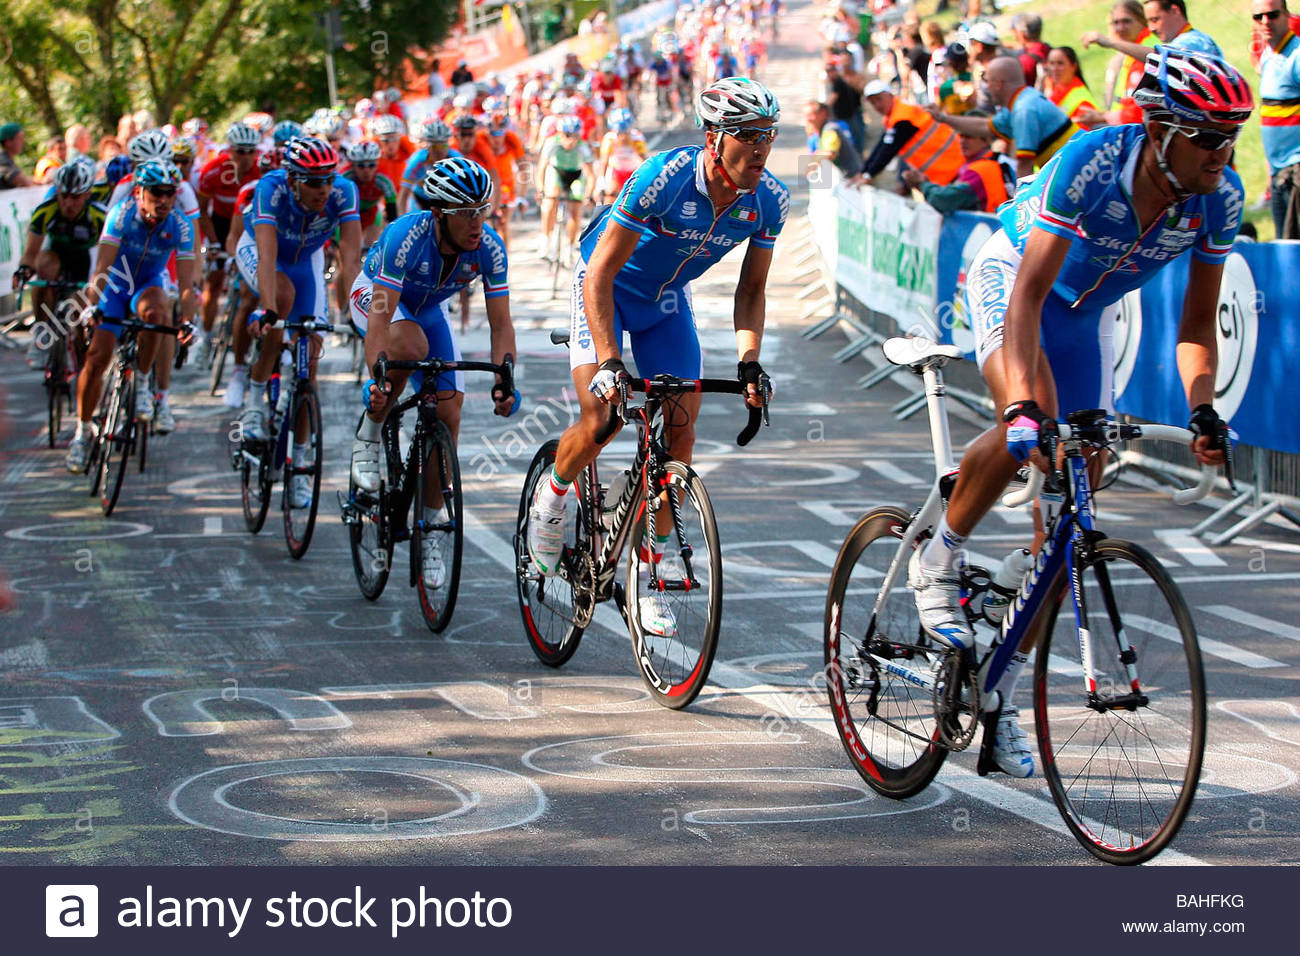 road cycling world championships, varese 2008'varese 28-09-2008'photo gianni nava/markanews - Stock Image